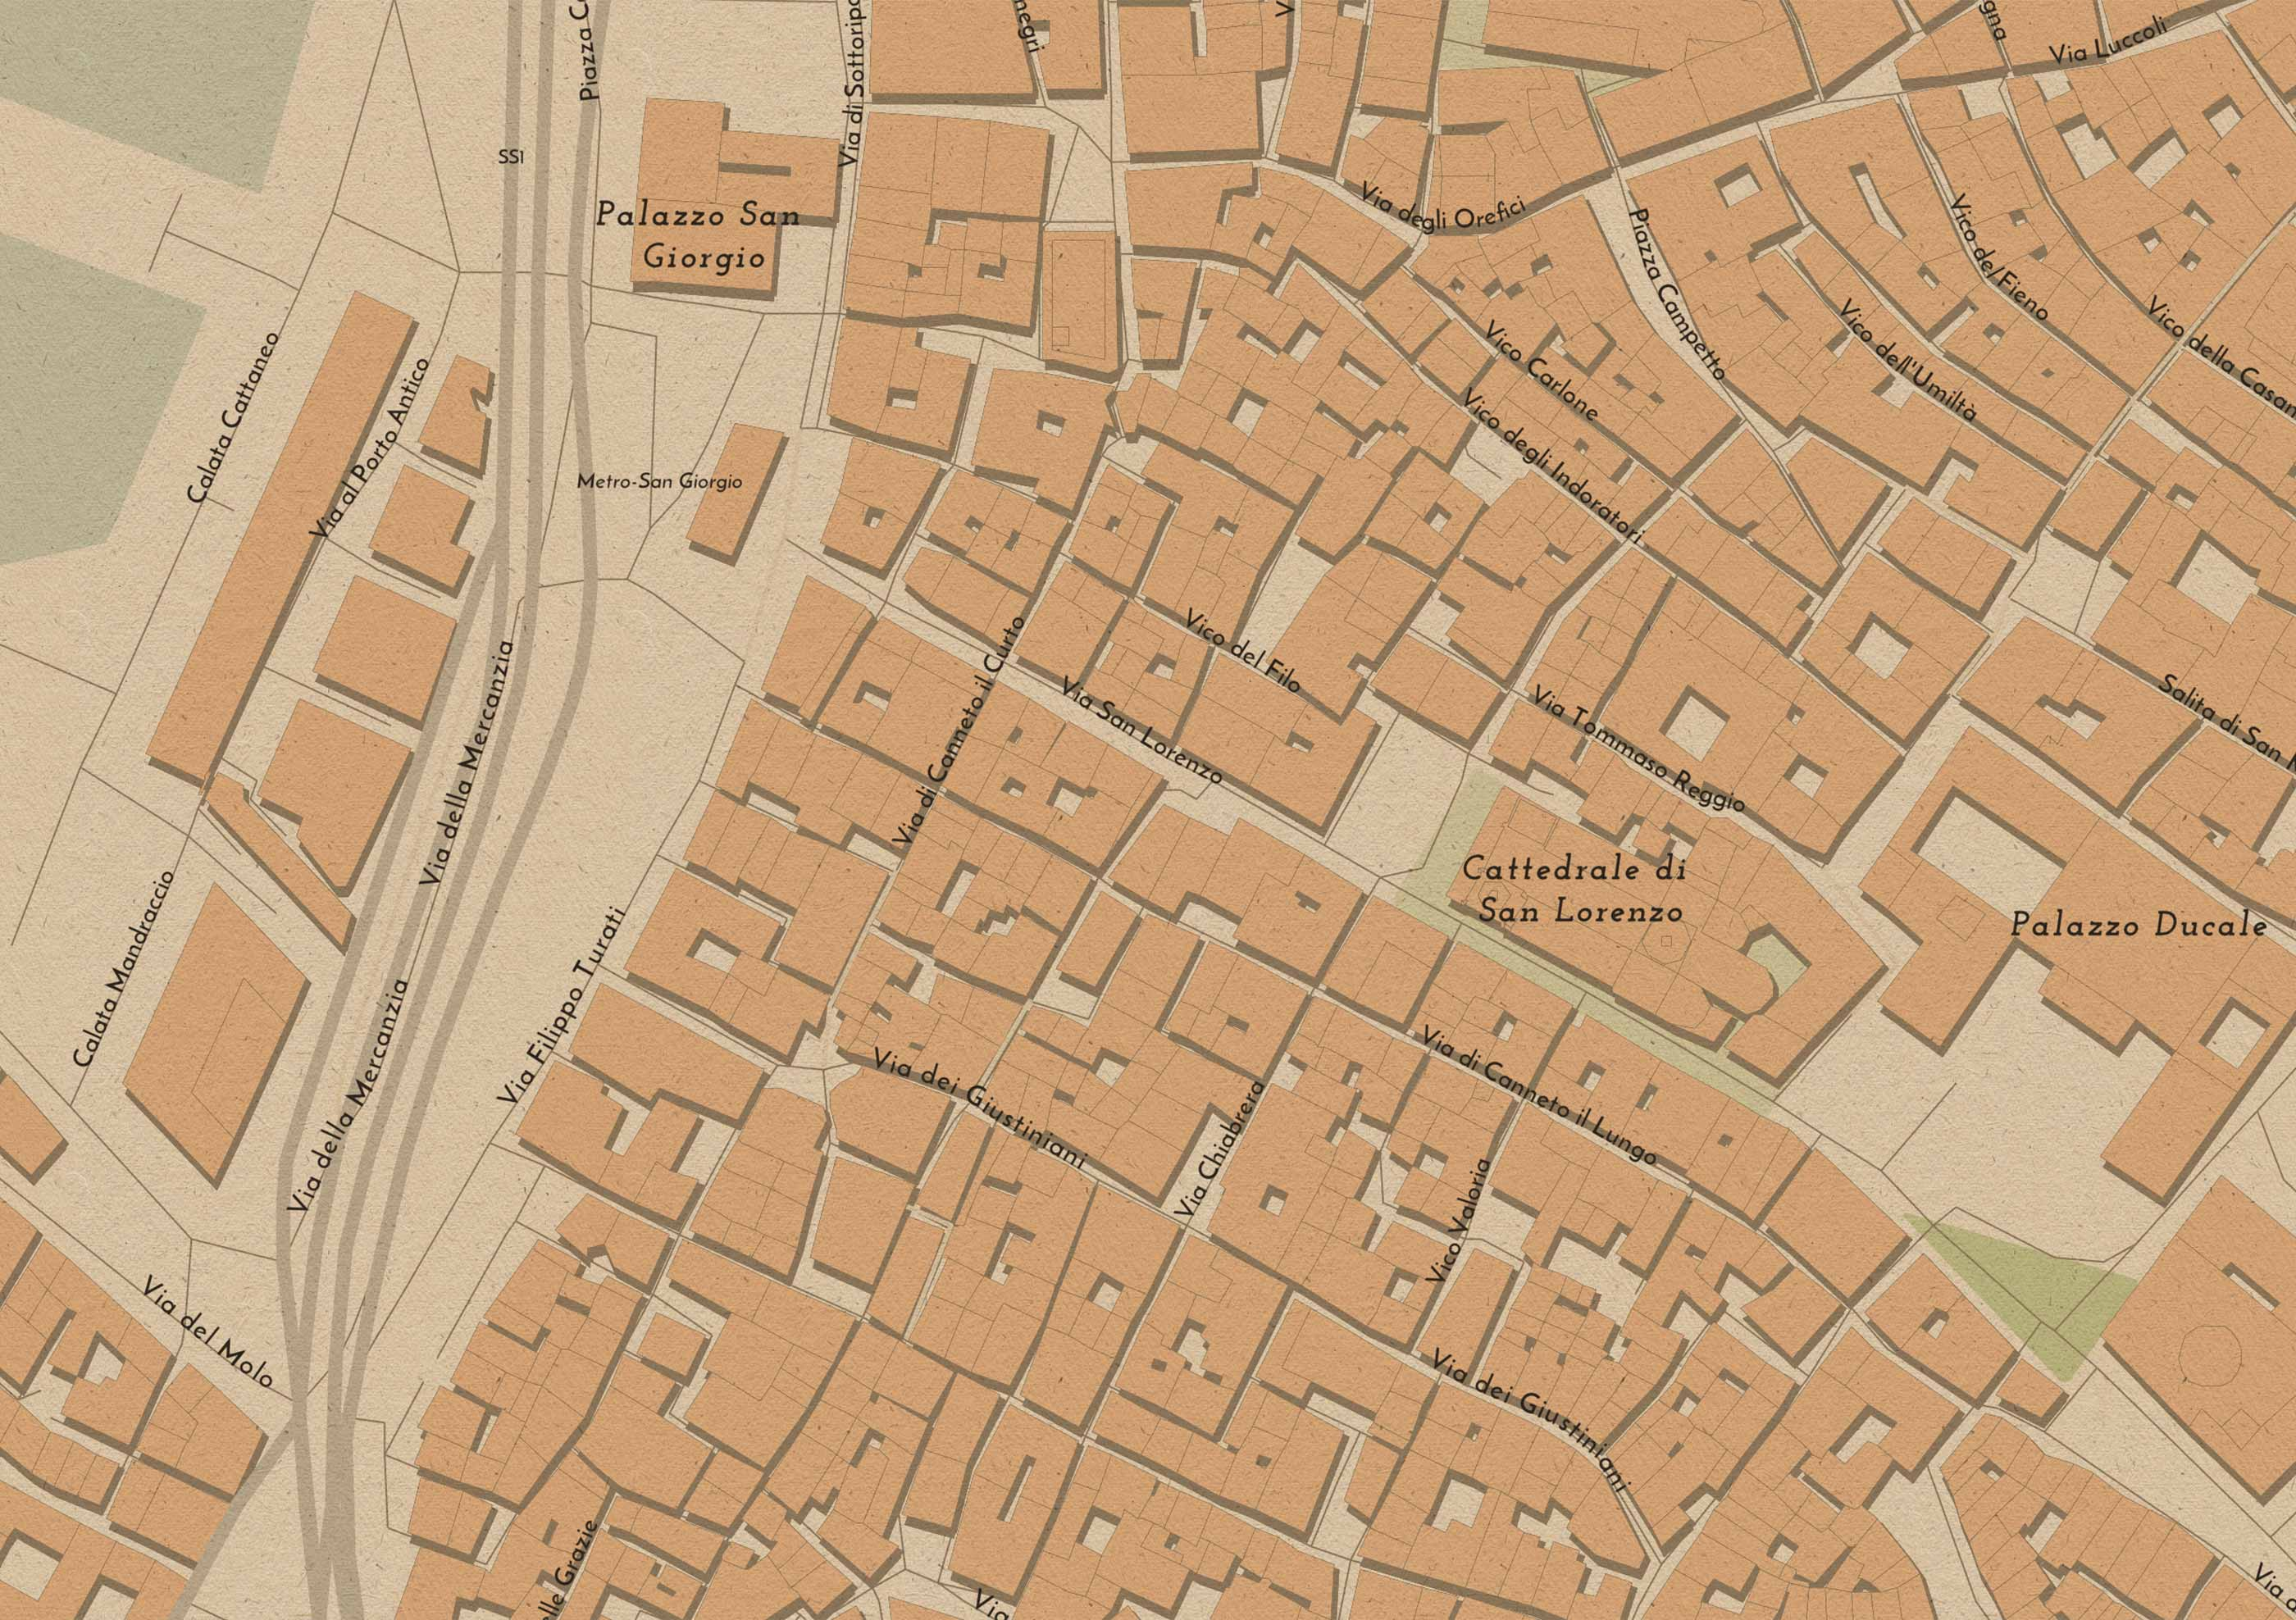 How to make a Vintage City style for Esri Vector Basemaps – Part 1